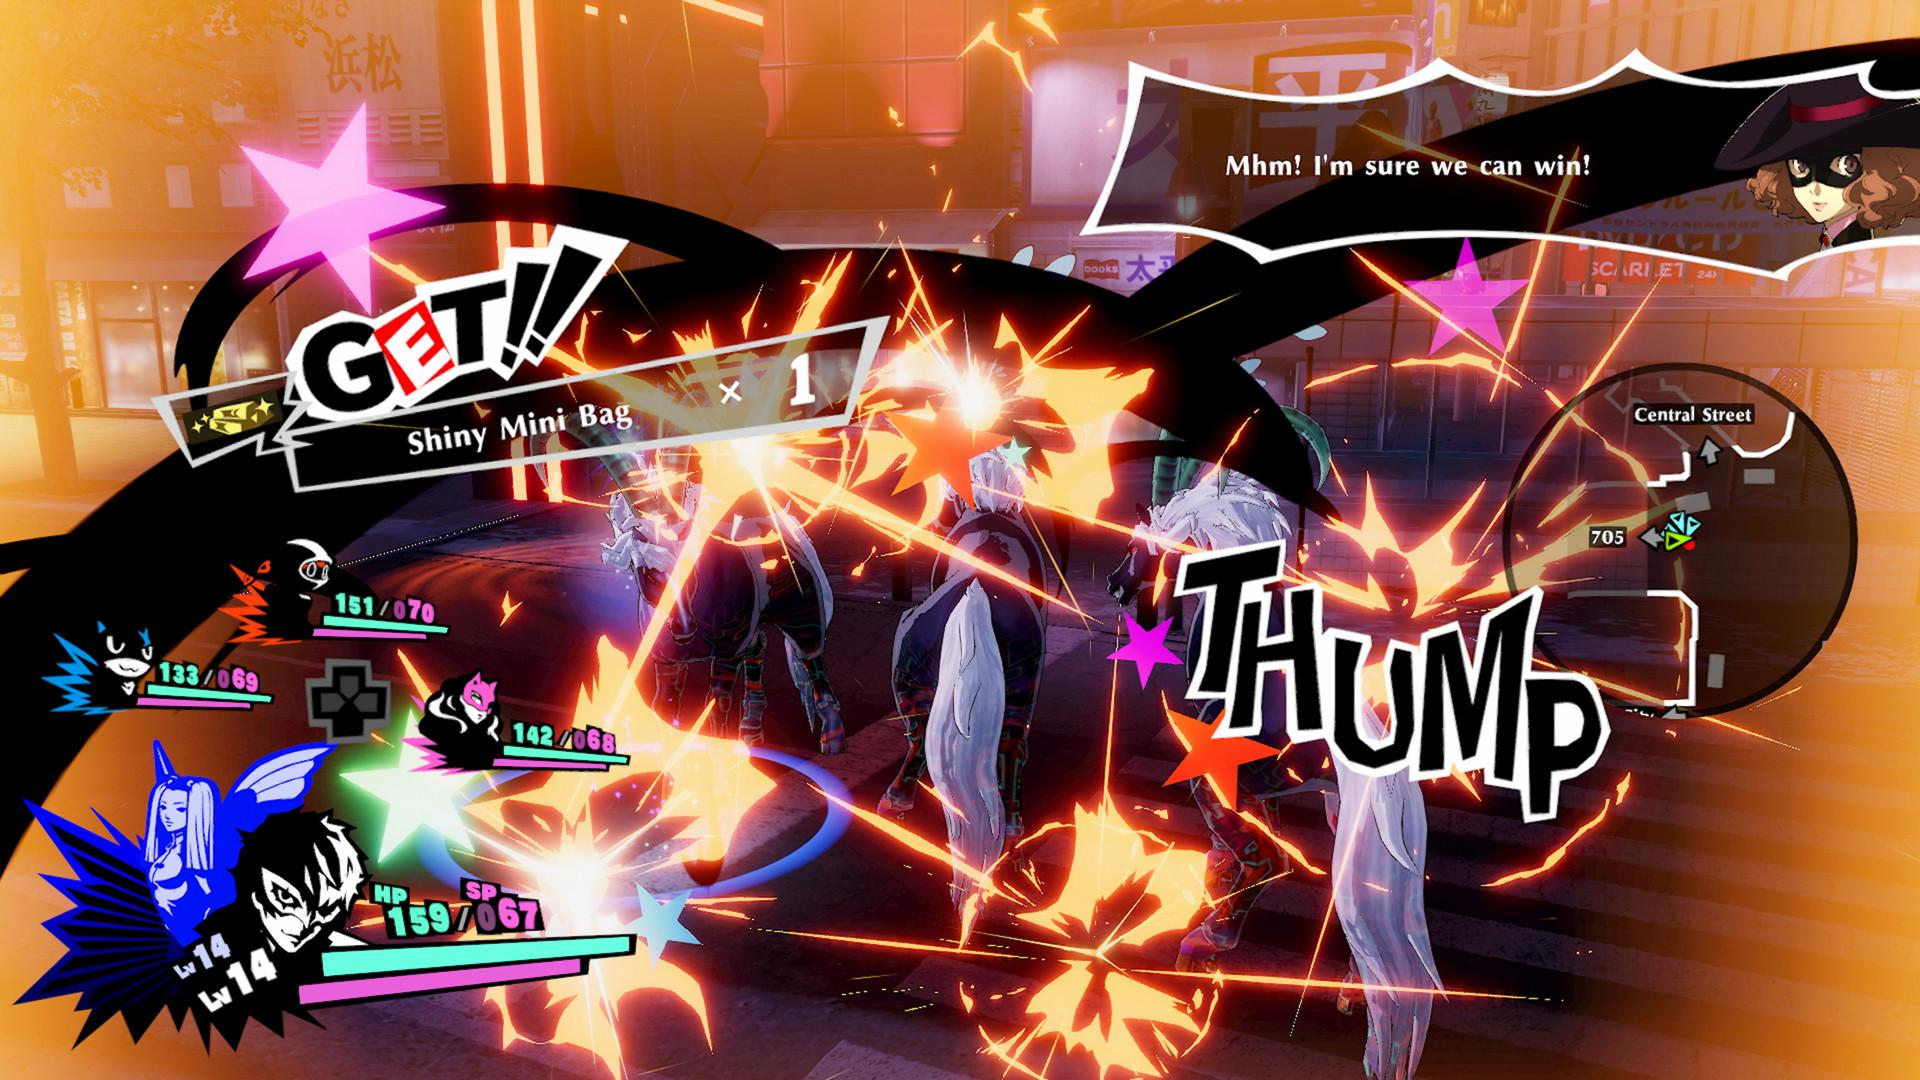 The All-Out Attack makes a reappearance in the Musou-style spin-off Persona 5 Strikers